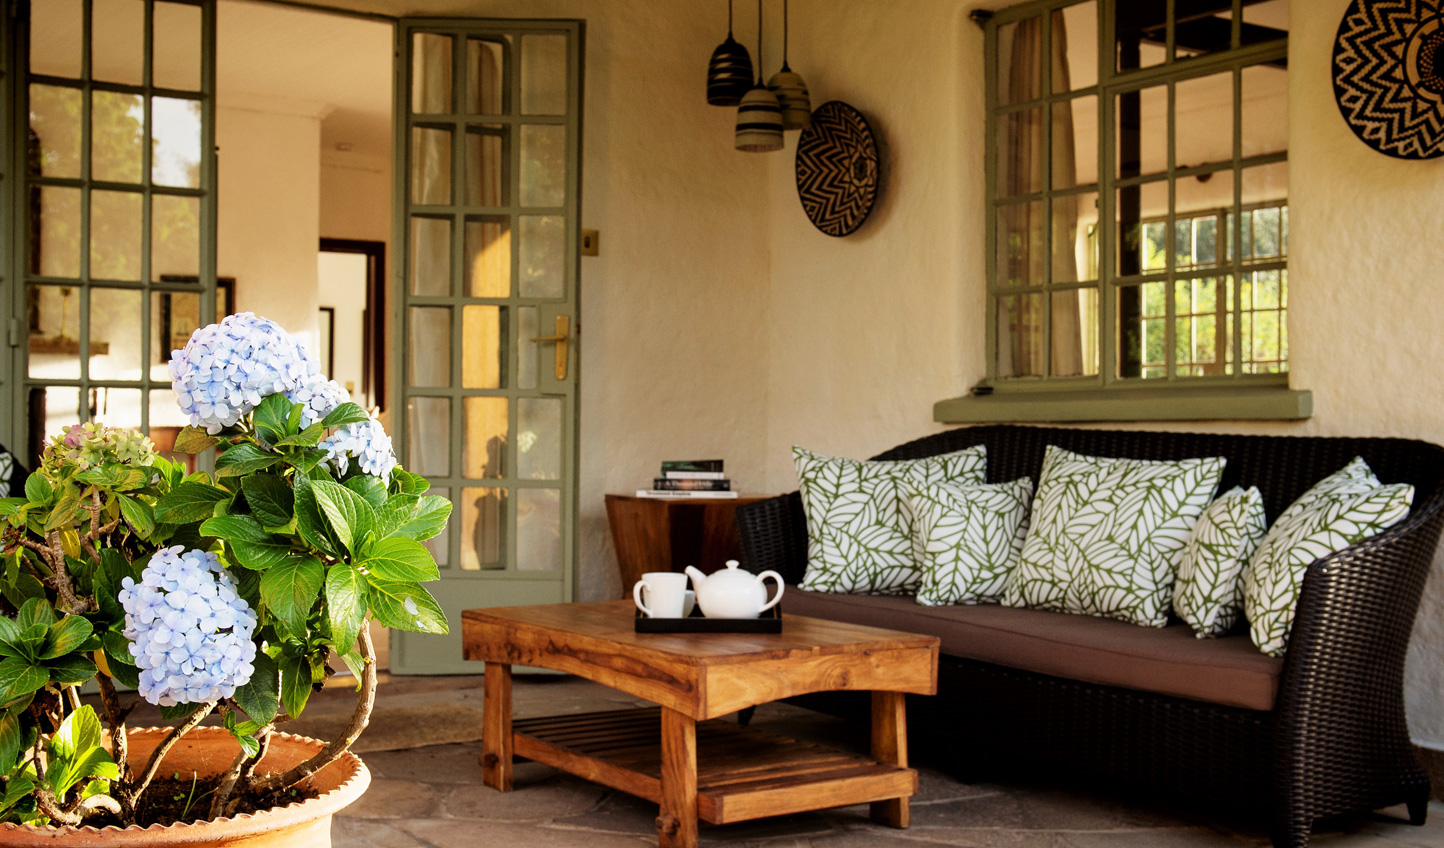 Watch the world go by from the veranda as the sun descends on this breath-taking land